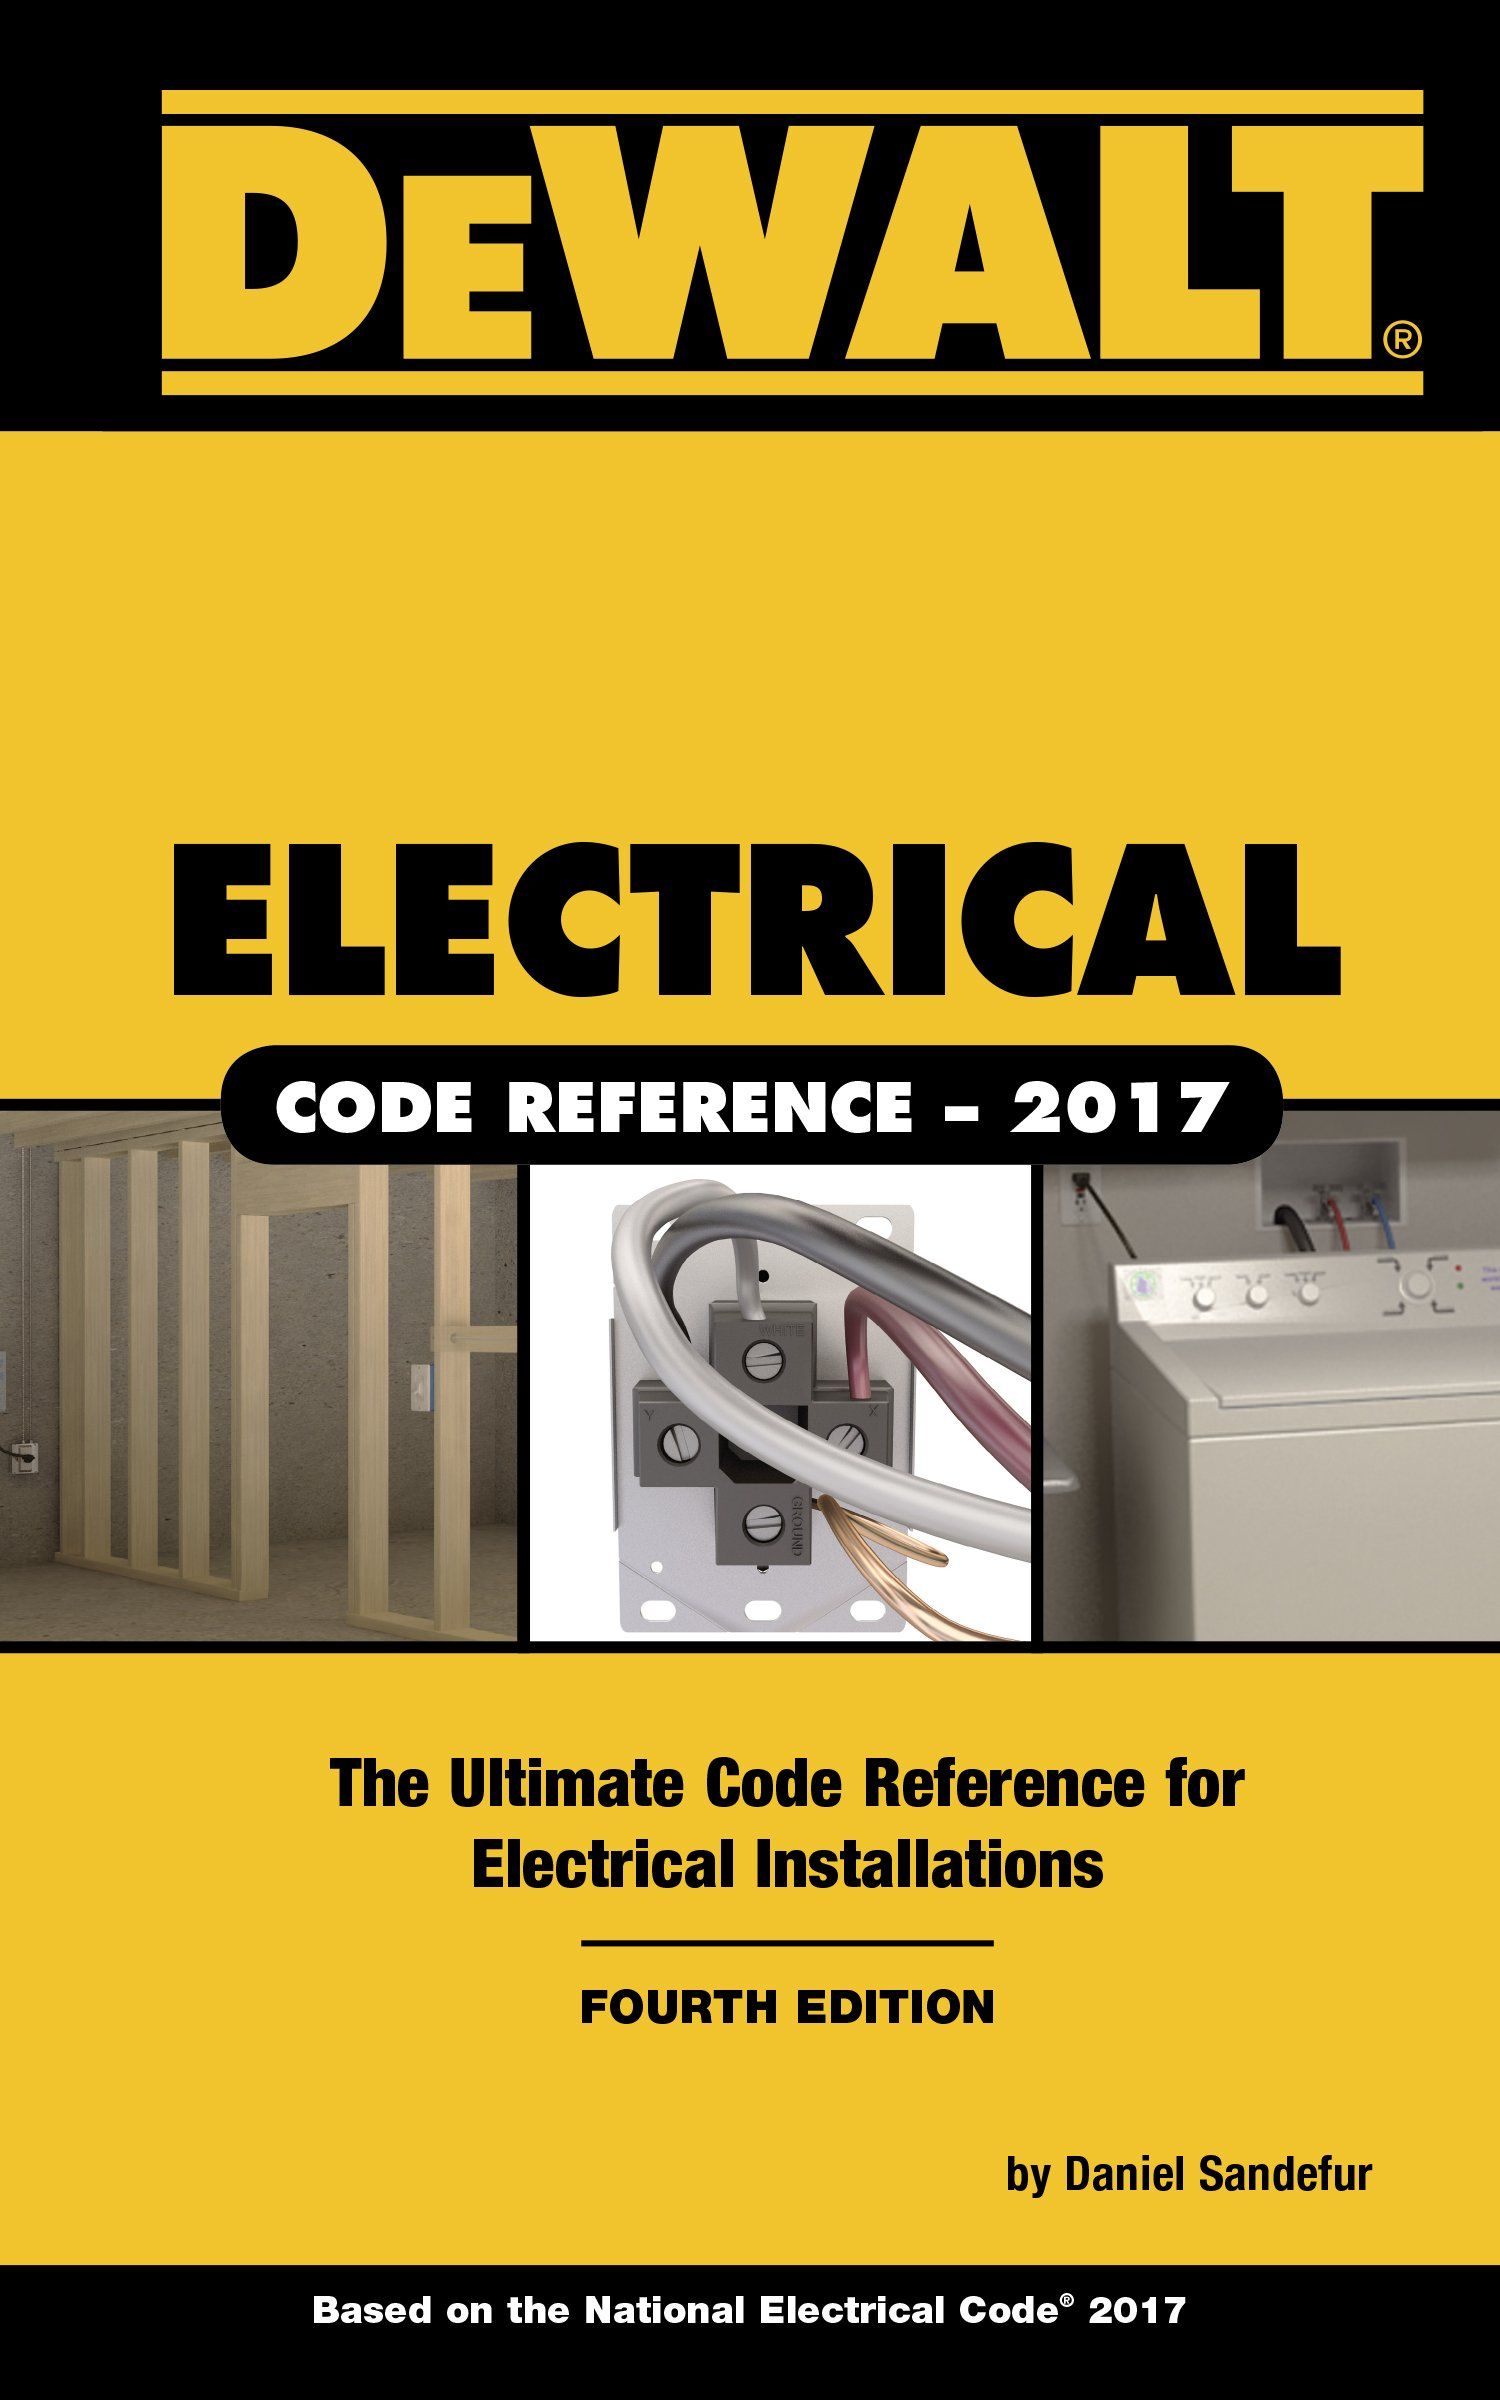 Dewalt Electrical Code Reference Based On The 2017 Nec Dewalt